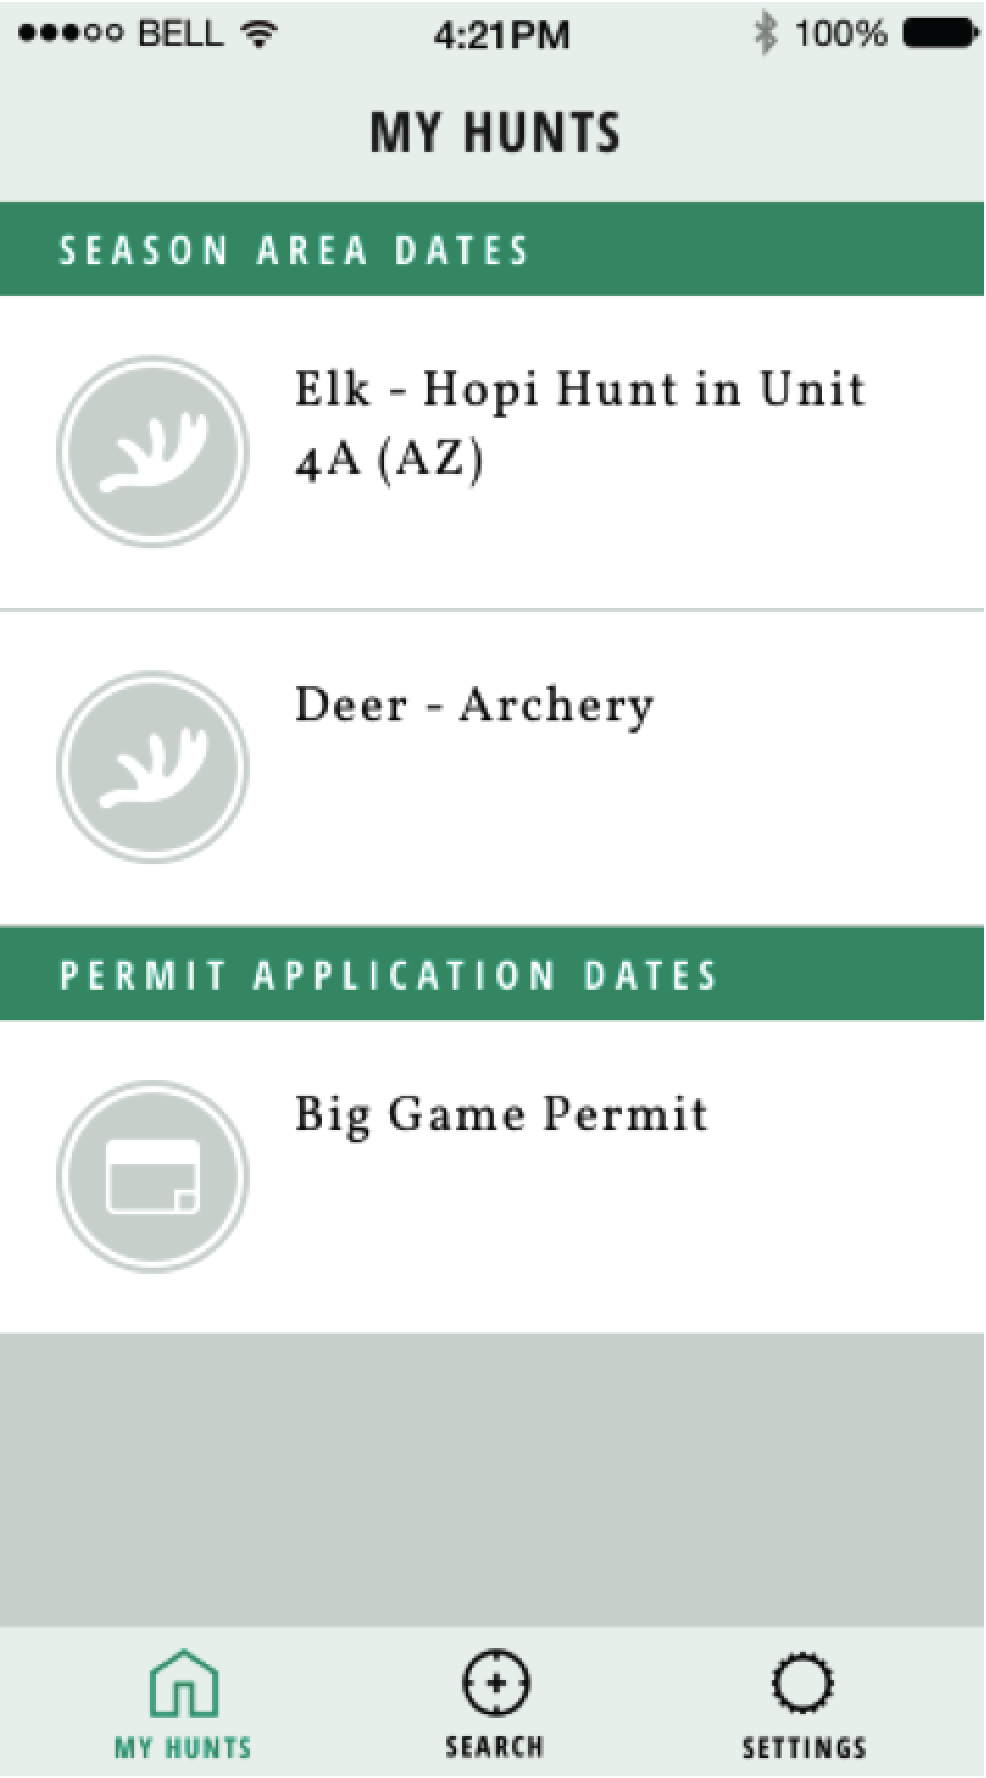 And add your selection to your MyHunts page. You'll receive an email or push alert the week before your hunt.